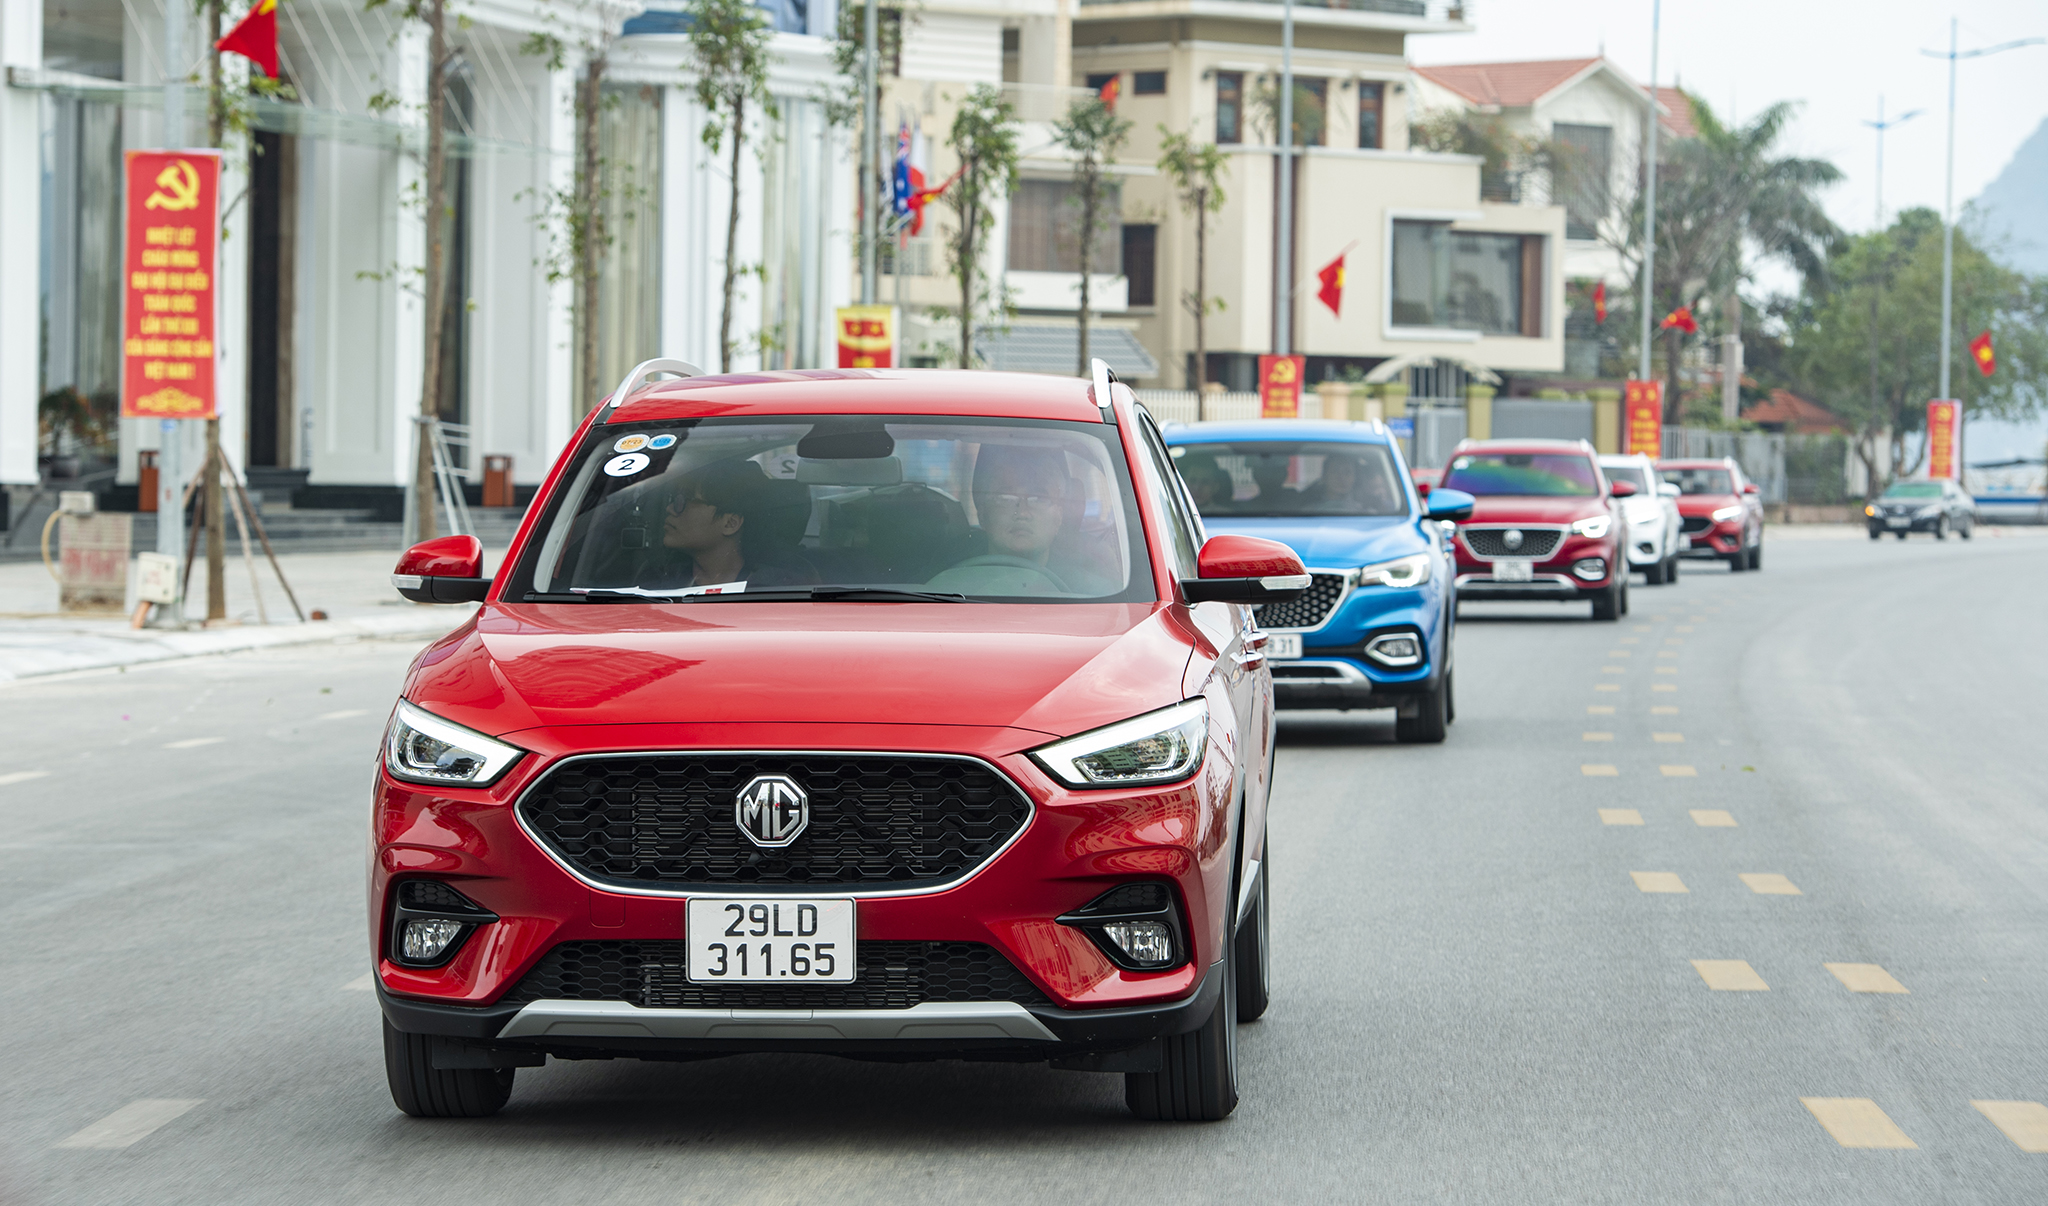 MG ZS 2021 evaluation: Choose a reasonable price range of 600 million dong dsc-7974-copy.jpg